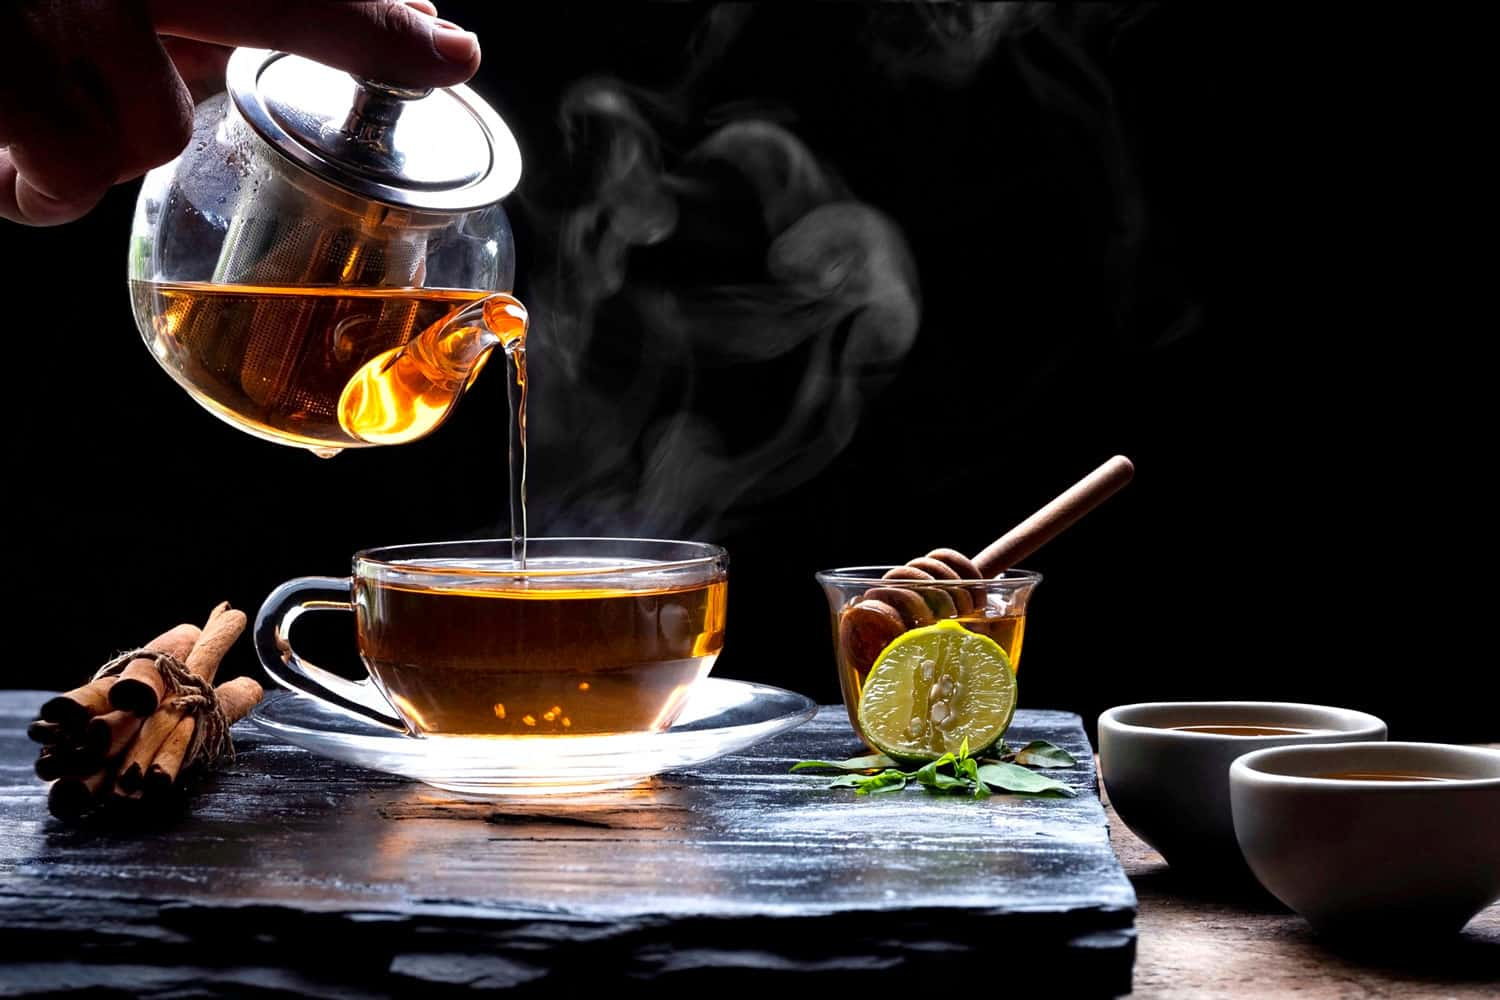 Pouring hot aromatic herbal tea from teapot into glass teacup set with steam and various herbs on black stone plate with wooden table floor in dark background, 5 Best Saucepans For Making Tea